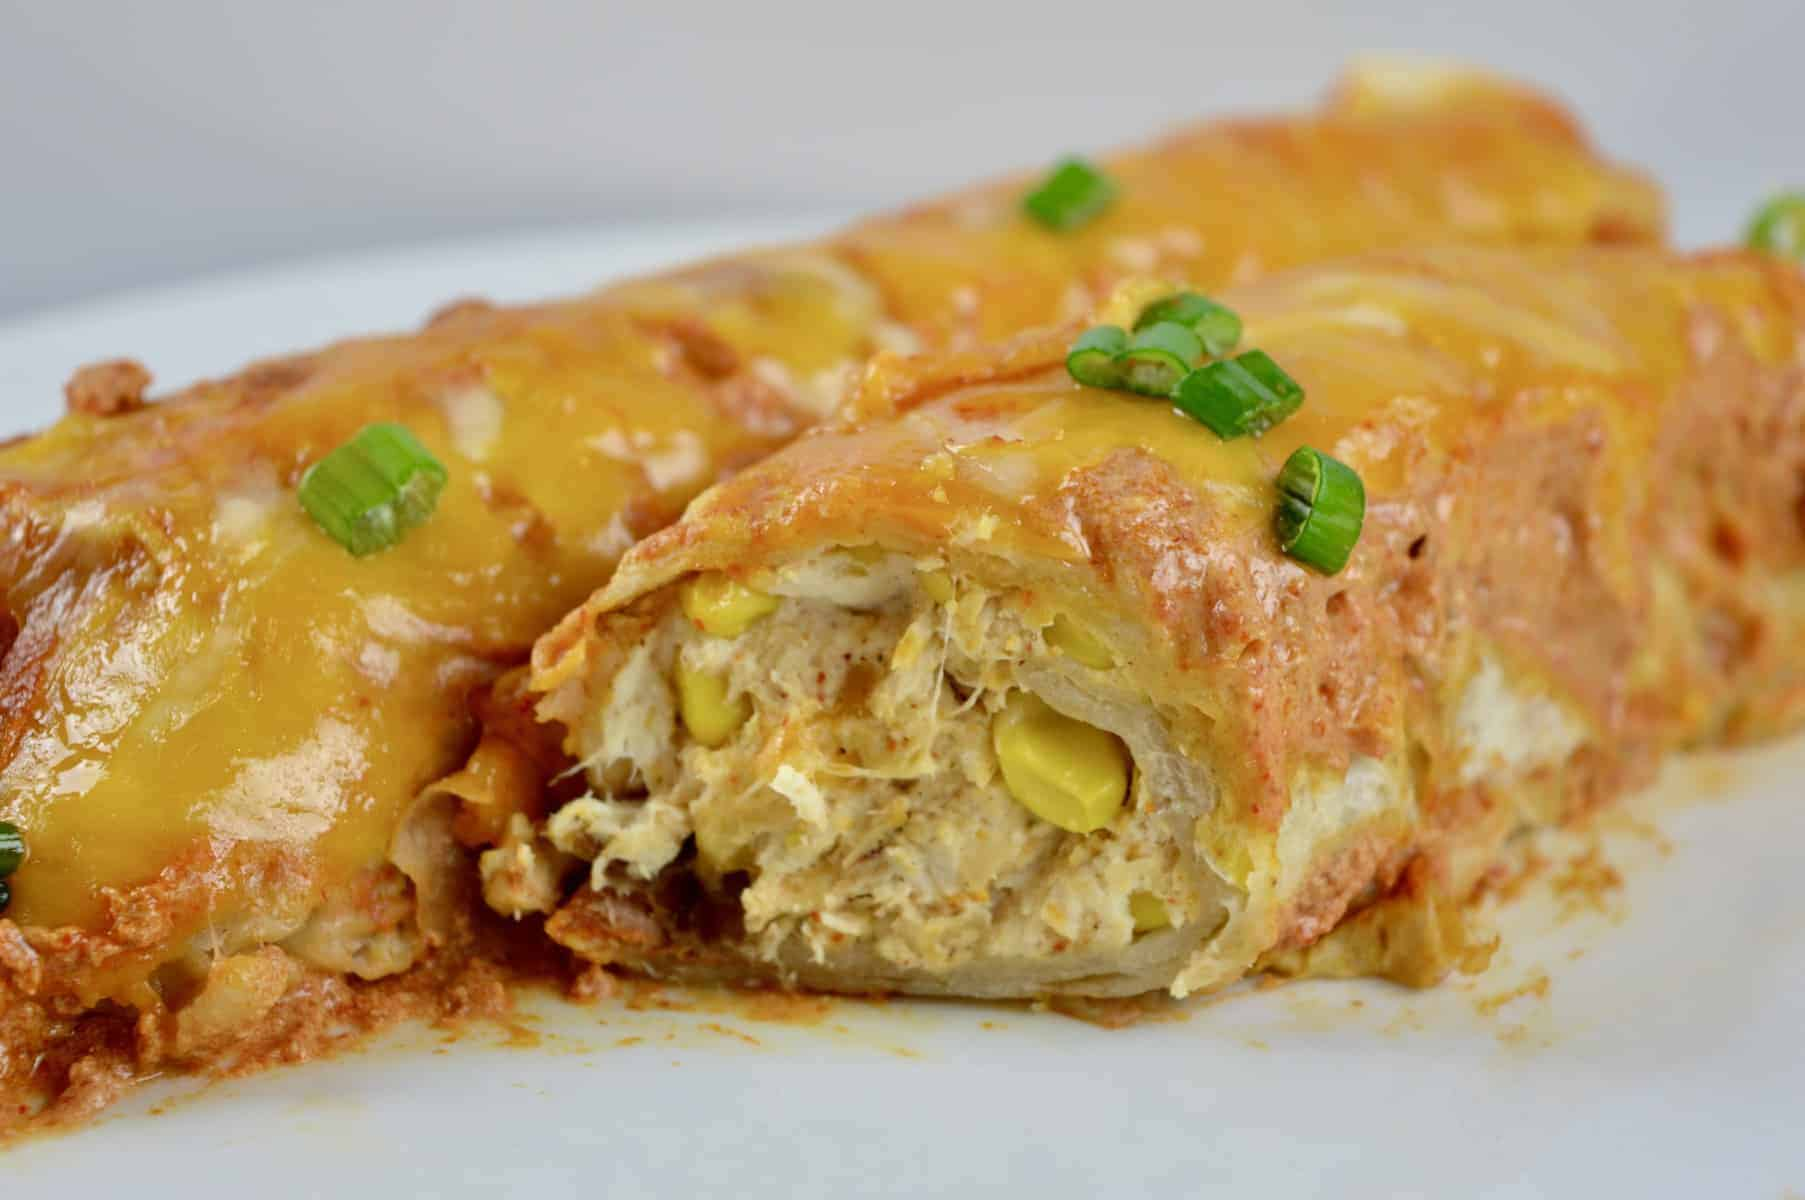 plate of enchiladas with chicken and corn